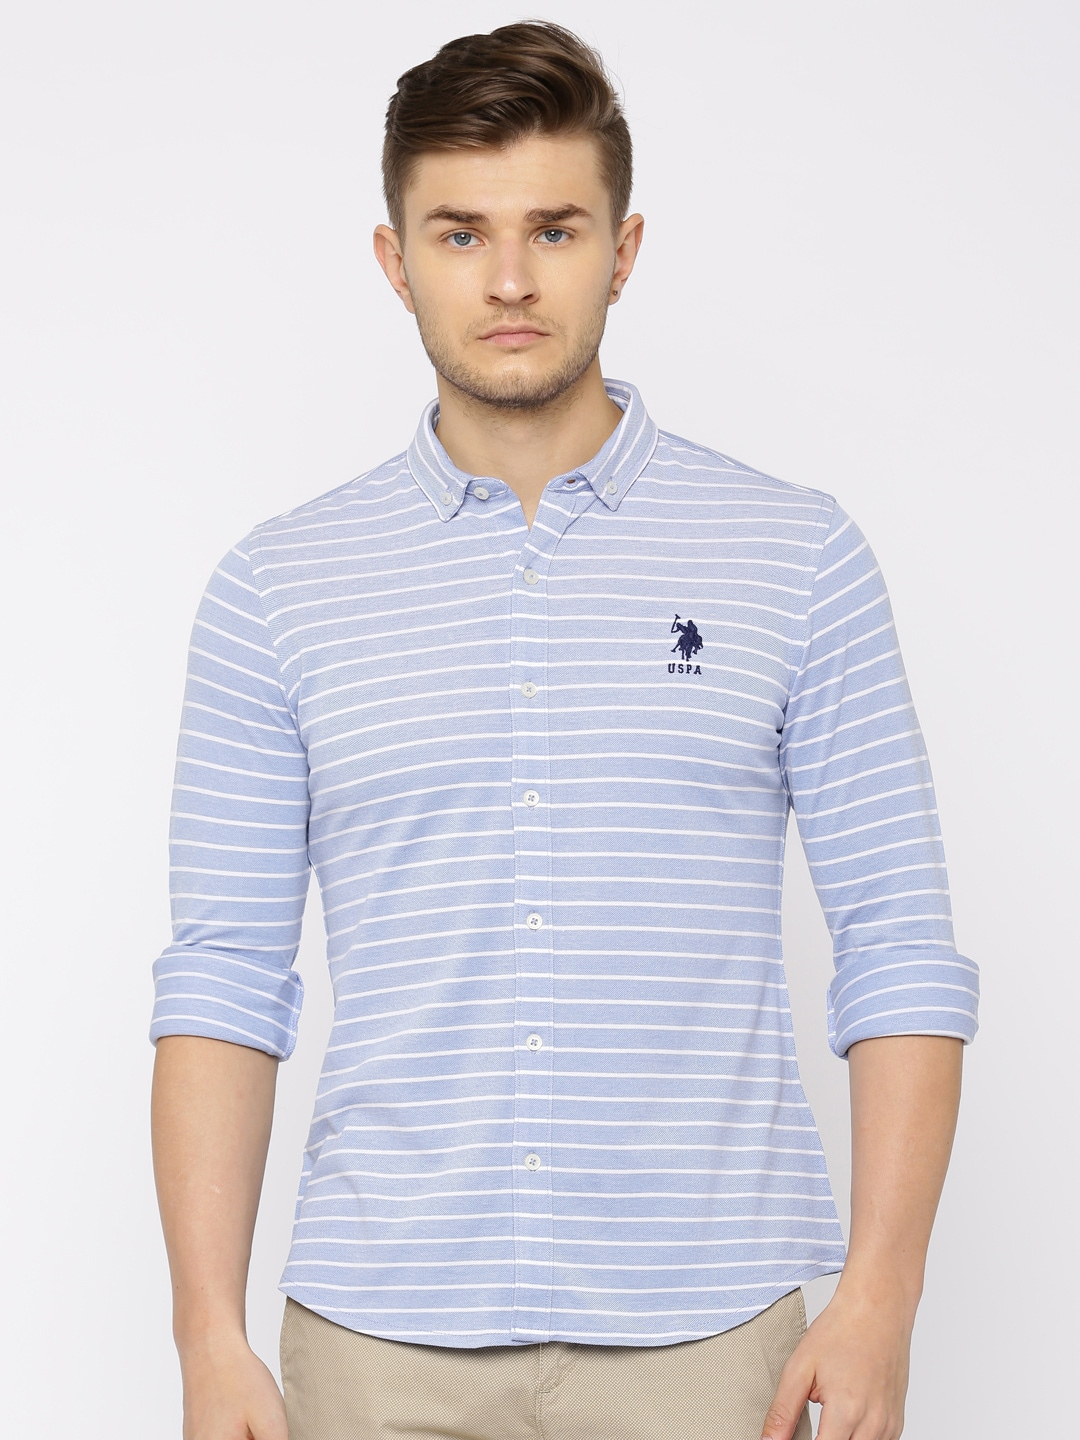 U.S. Polo Assn. Men Blue & White Regular Fit Striped Casual Shirt image